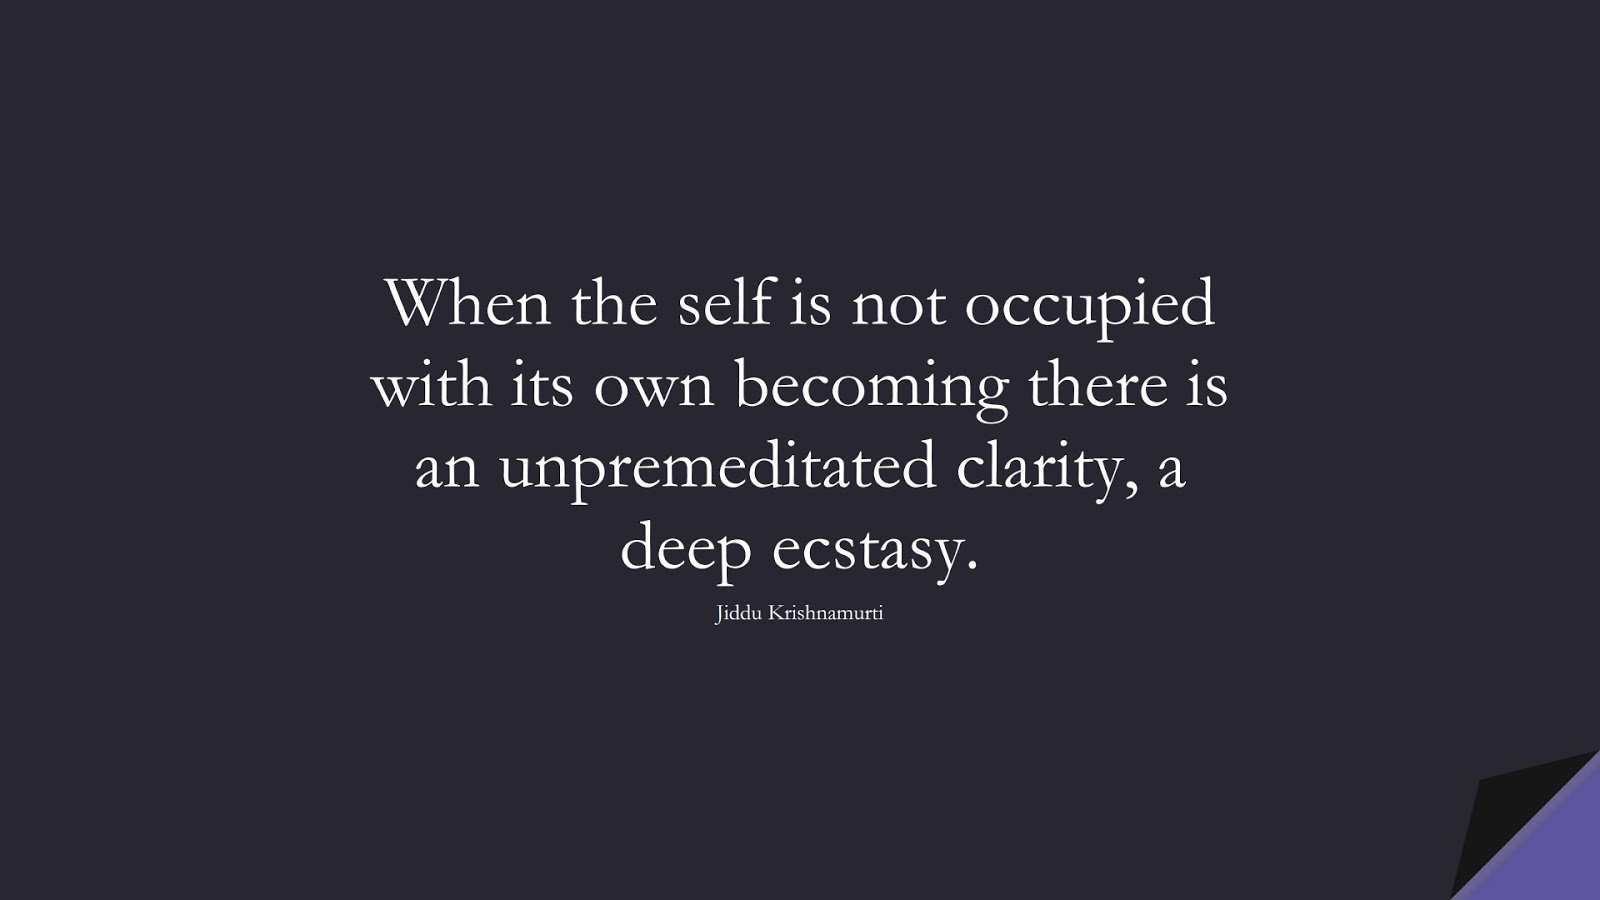 When the self is not occupied with its own becoming there is an unpremeditated clarity, a deep ecstasy. (Jiddu Krishnamurti);  #BestQuotes